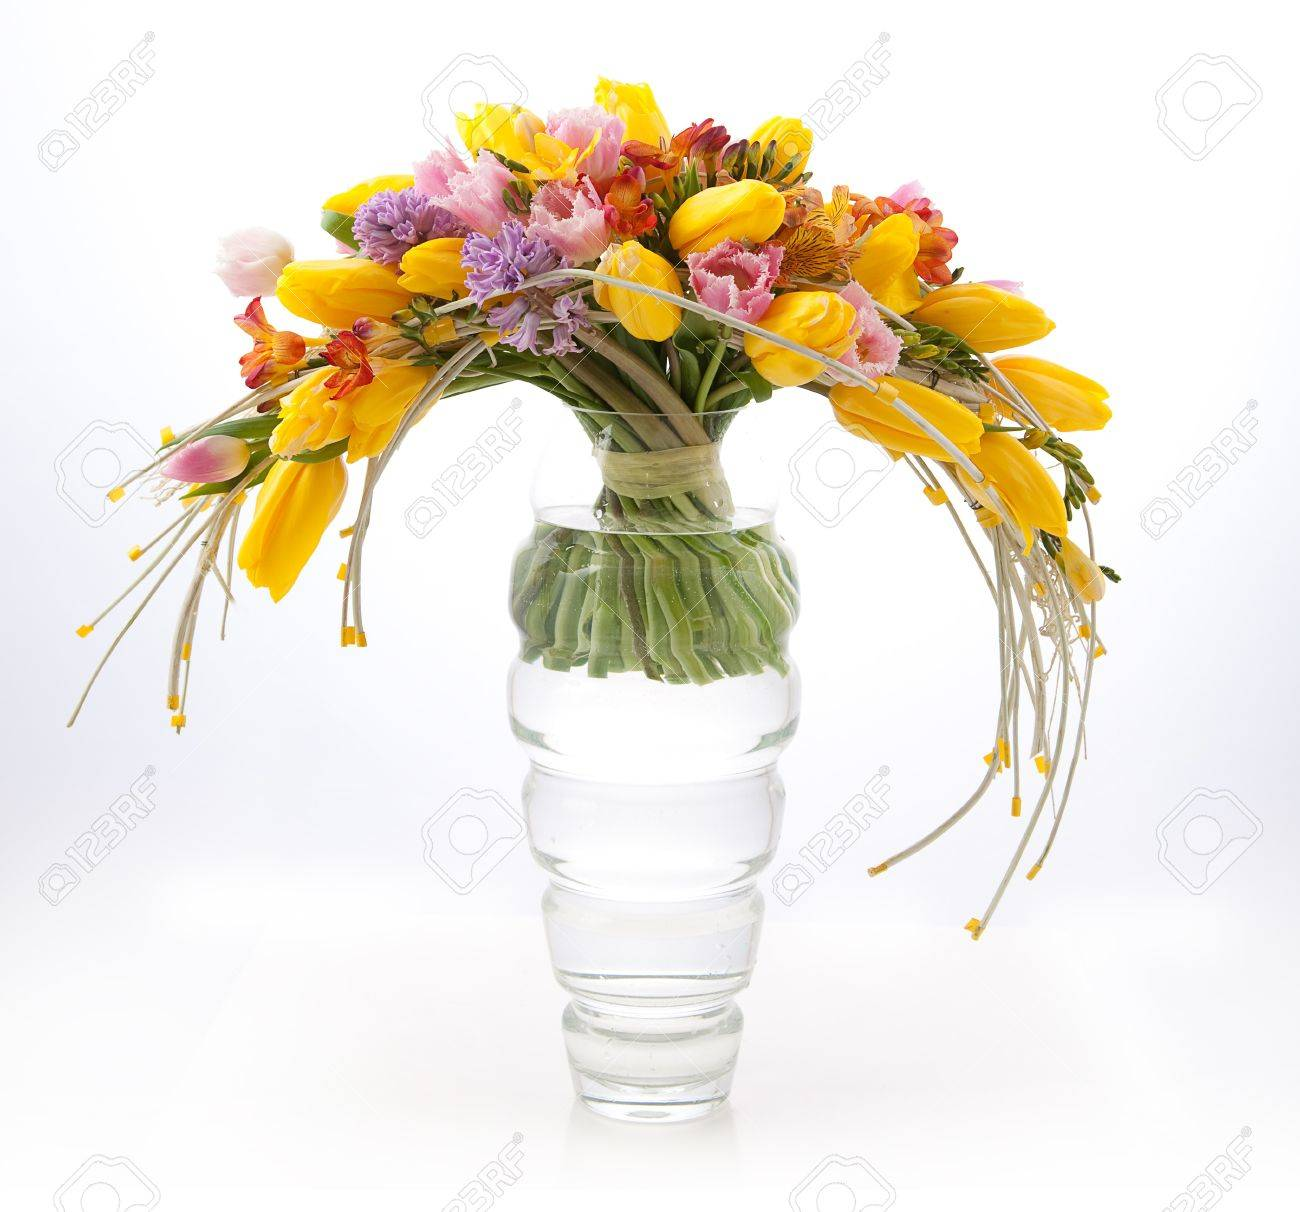 Floristics - colorful vernal flowers bouquet arrangement in vase isolated on white Stock Photo - 12433226